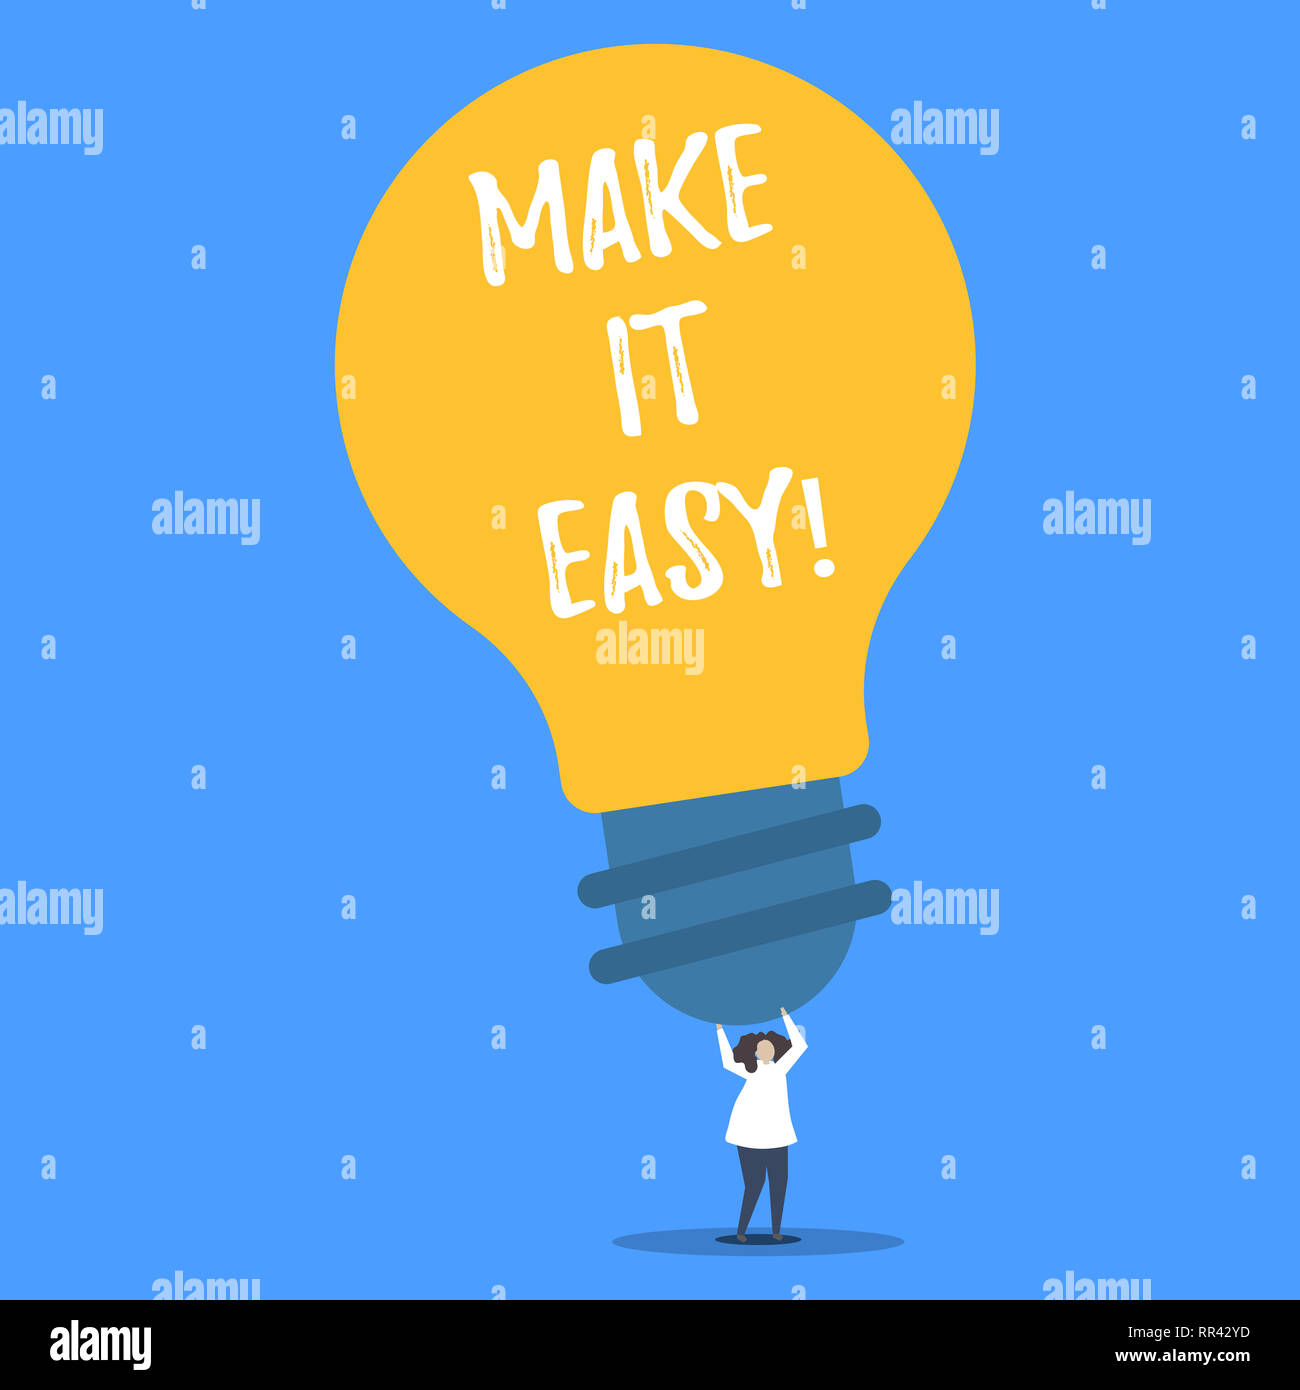 Word writing text Make It Easy. Business concept for Smart approach Effortless Free from worries or difficulties - Stock Image